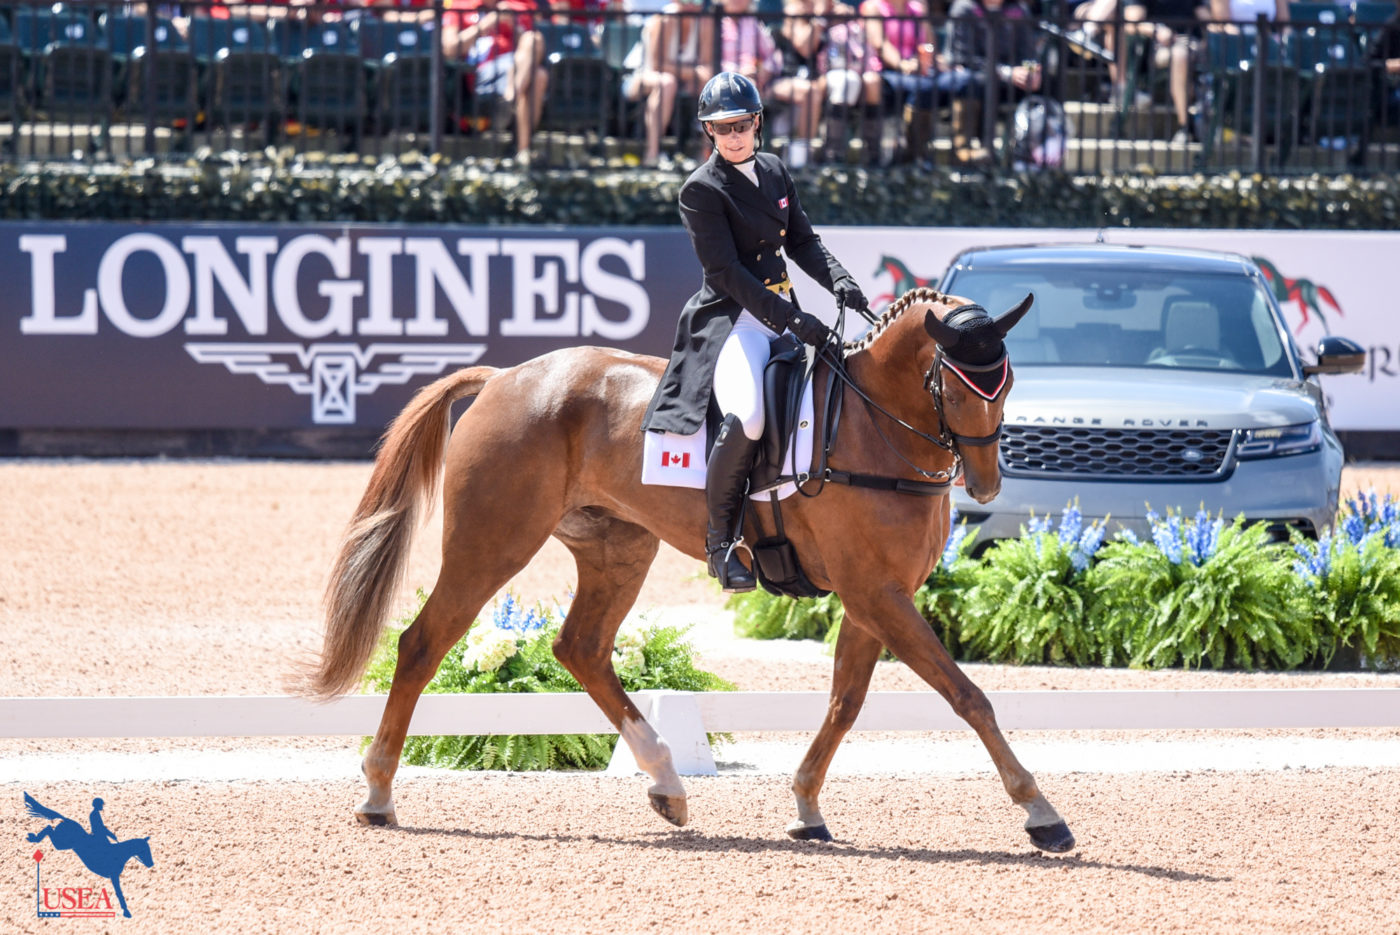 39th - Lisa Marie Fergusson and Honor Me (CAN) - 40.2